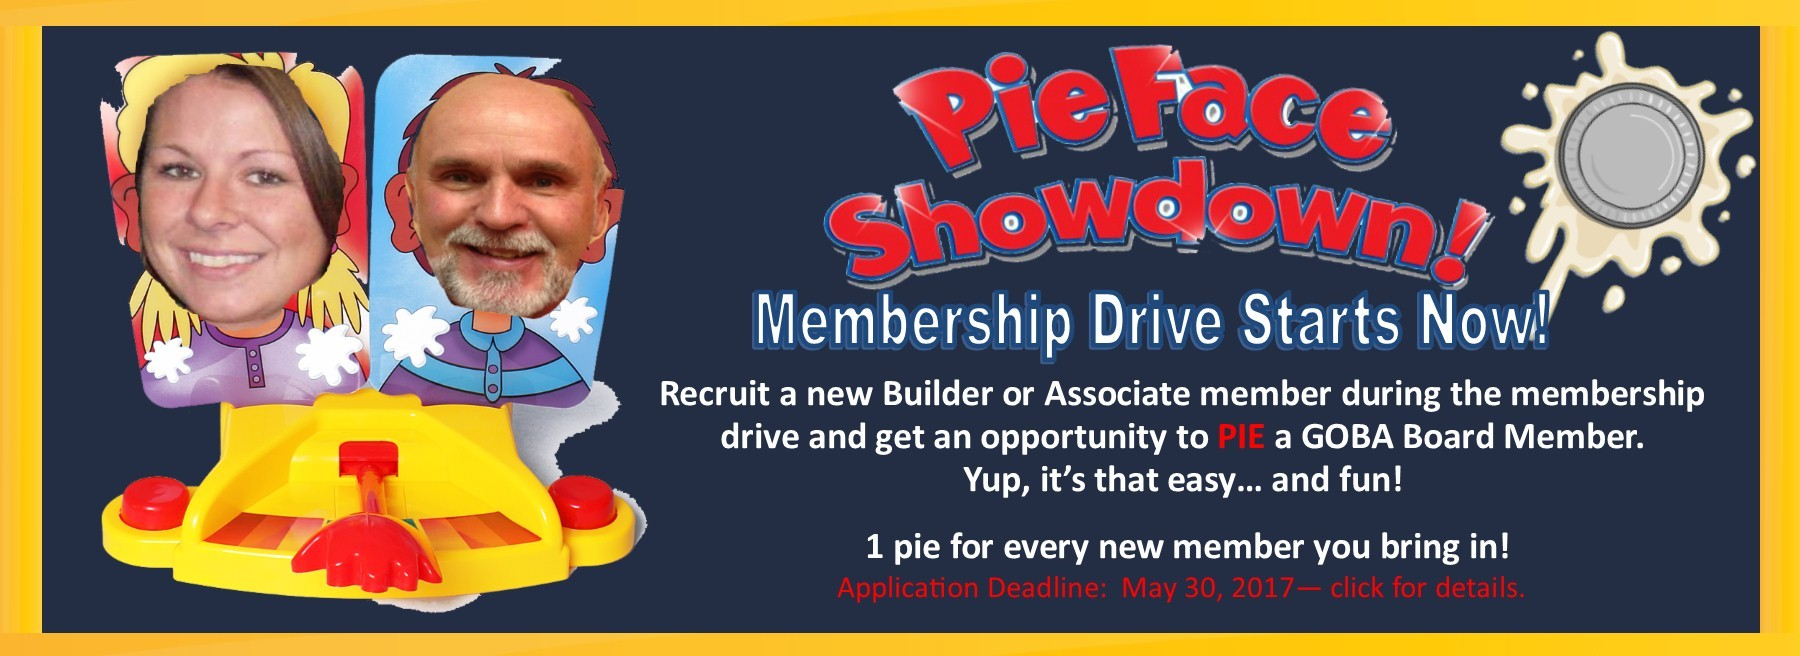 Pie-Face-Flyer-banner-WEEKLY-w1800.jpg